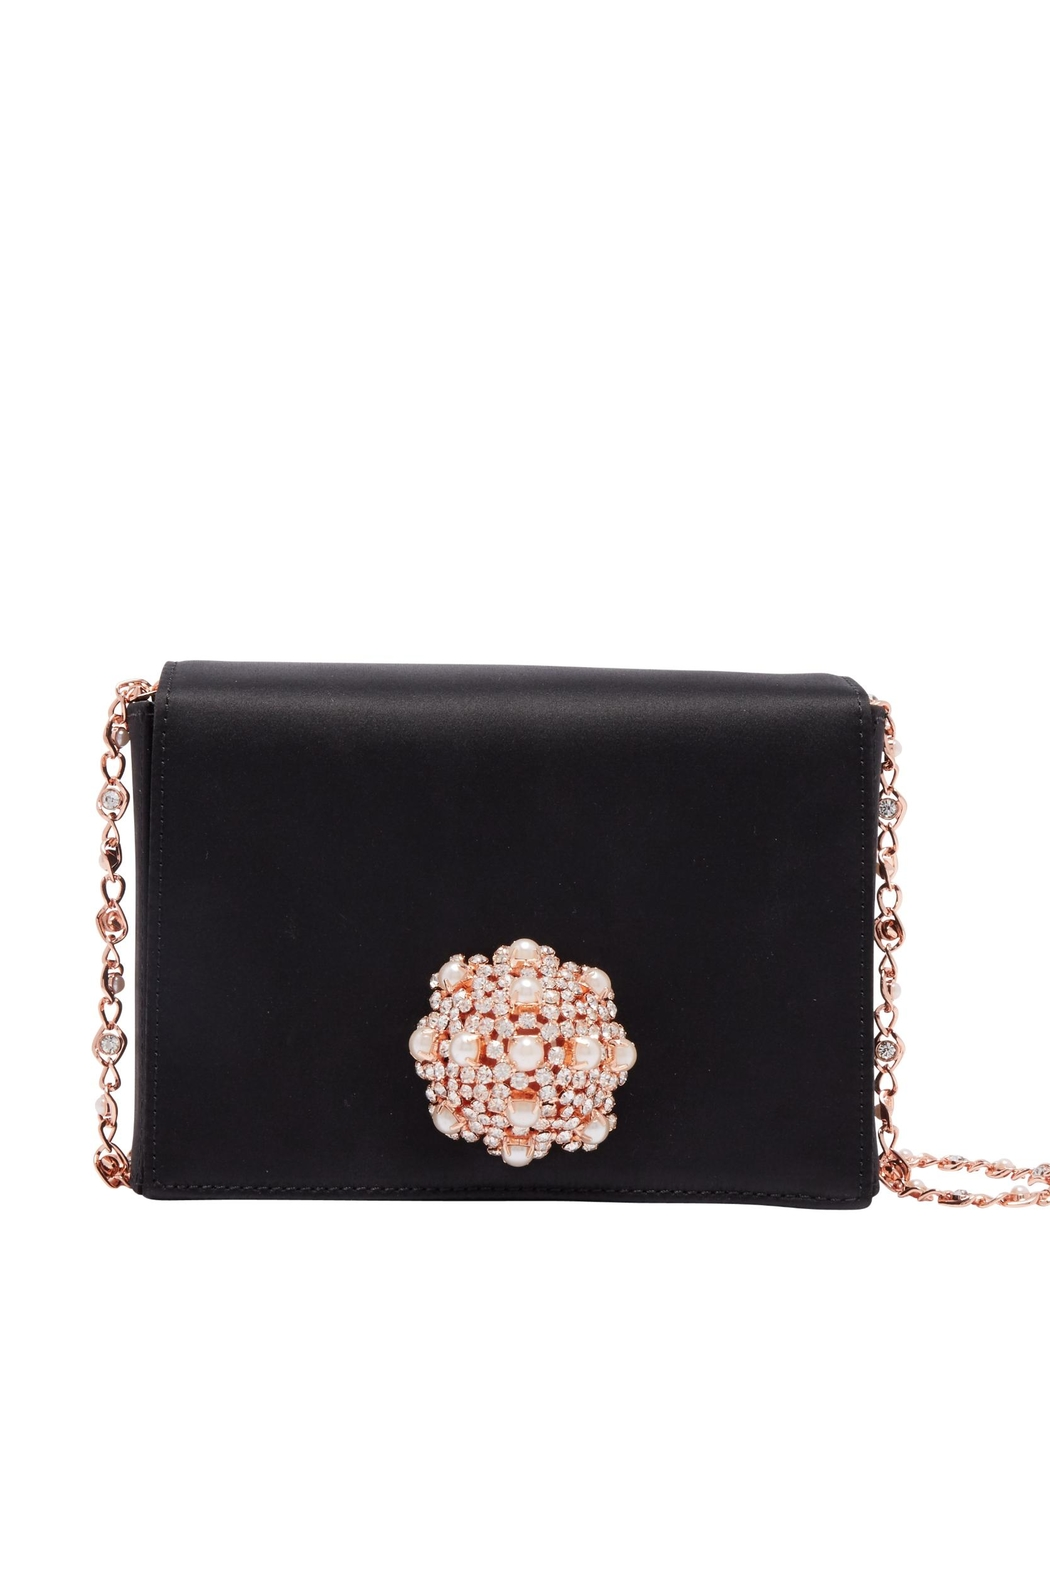 532c26c4cbe Ted Baker Embellished Crossbody Bag from Wallingford by The Dressing ...